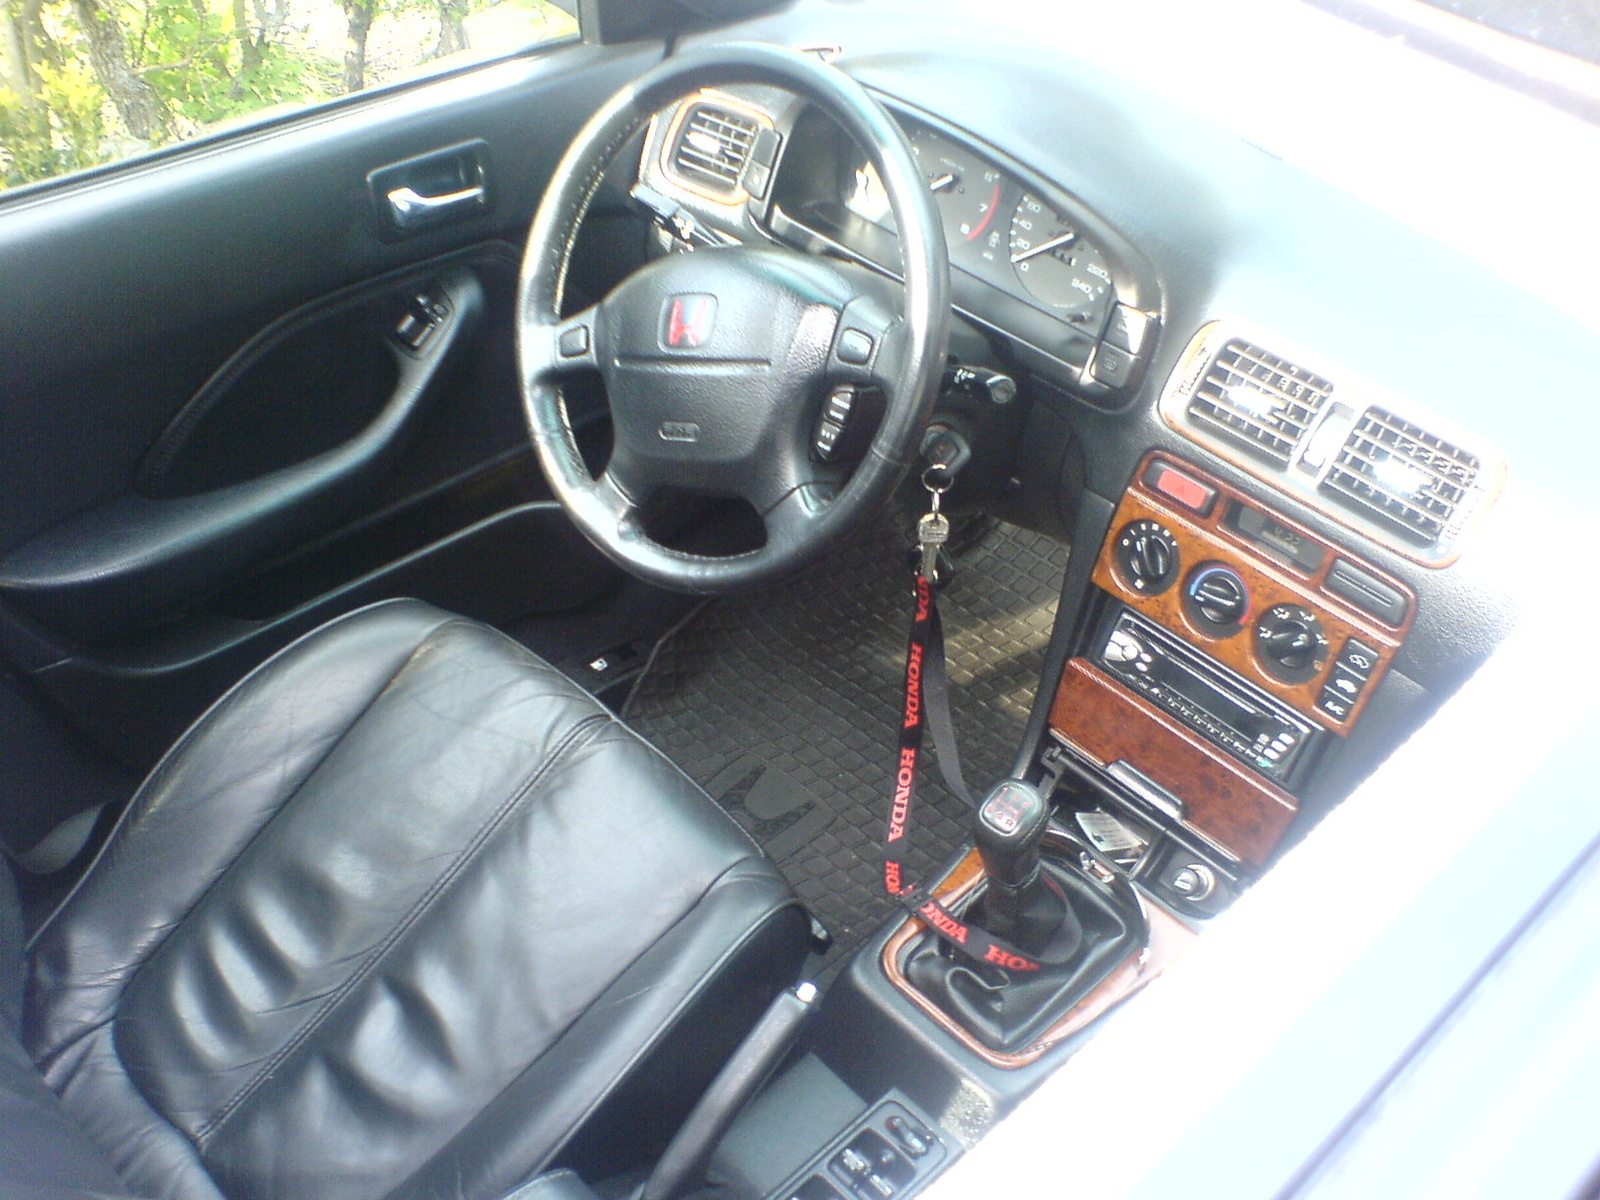 1996 Honda Accord picture, interior